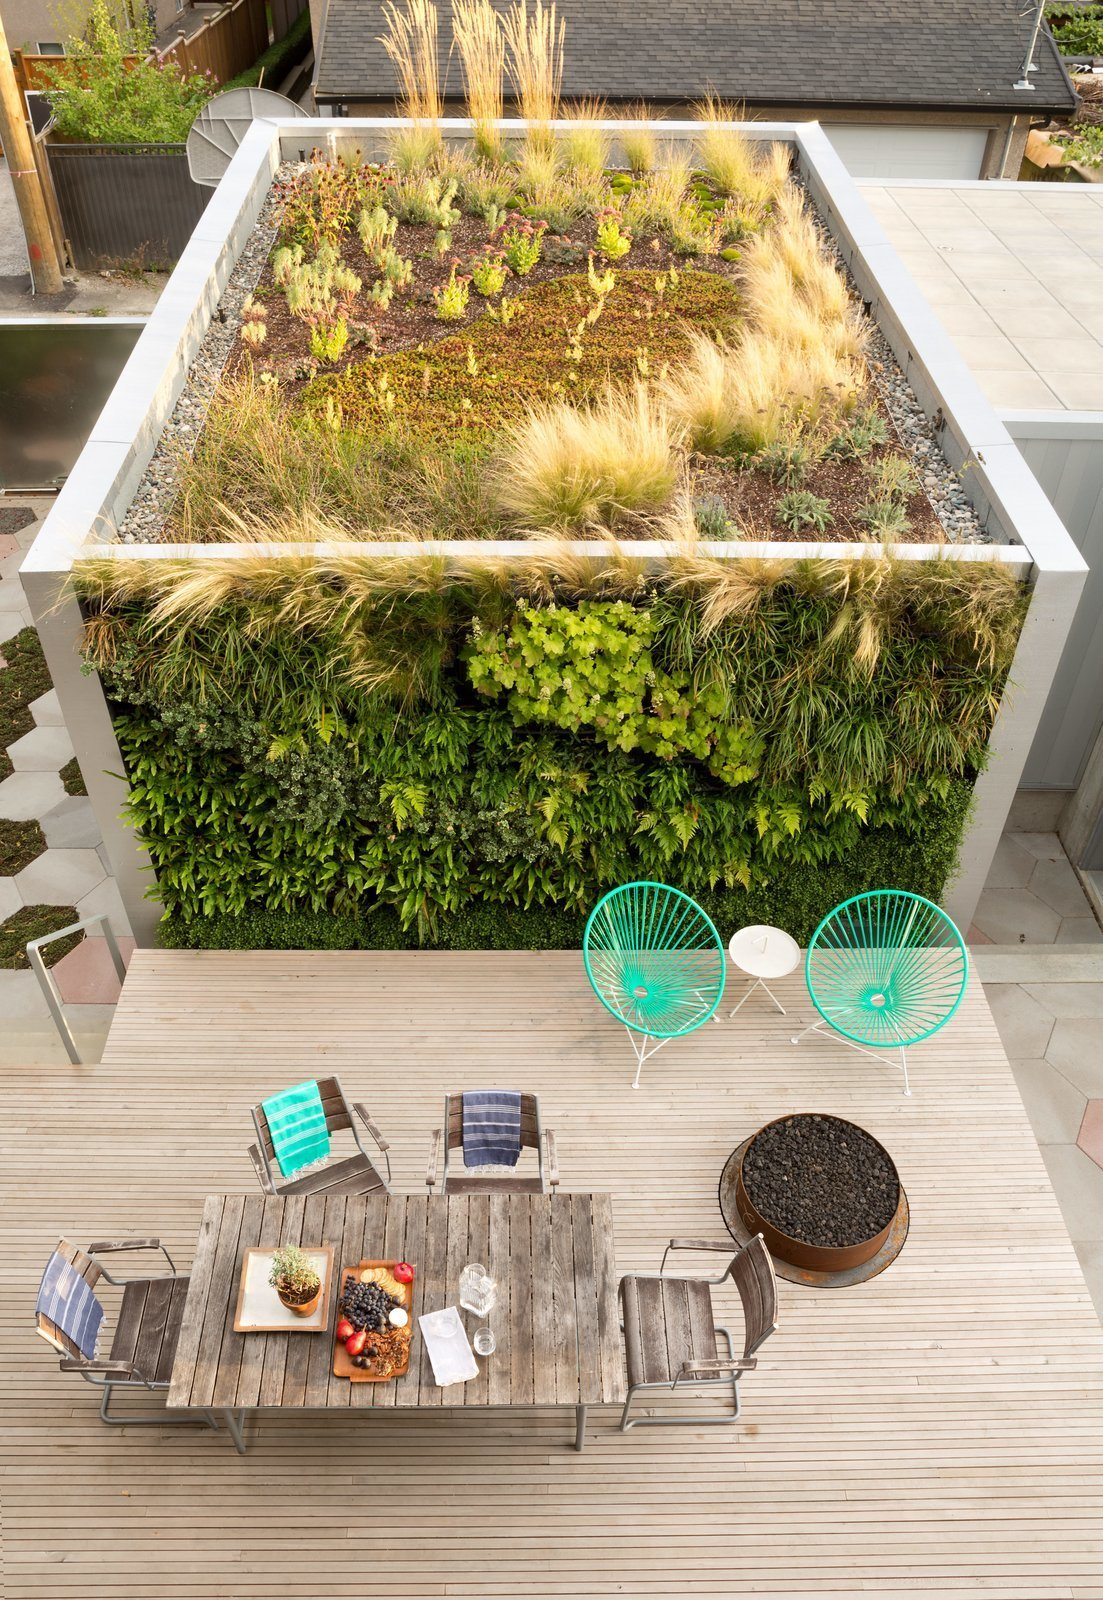 Cloaked in local flora on two side with a grassy roof garden on top, this galvanized box serve as a home studio for jewellery designer in Vancouver.  Photo 3 of 10 in 10 Ways to Create an Uplifting Vertical Garden